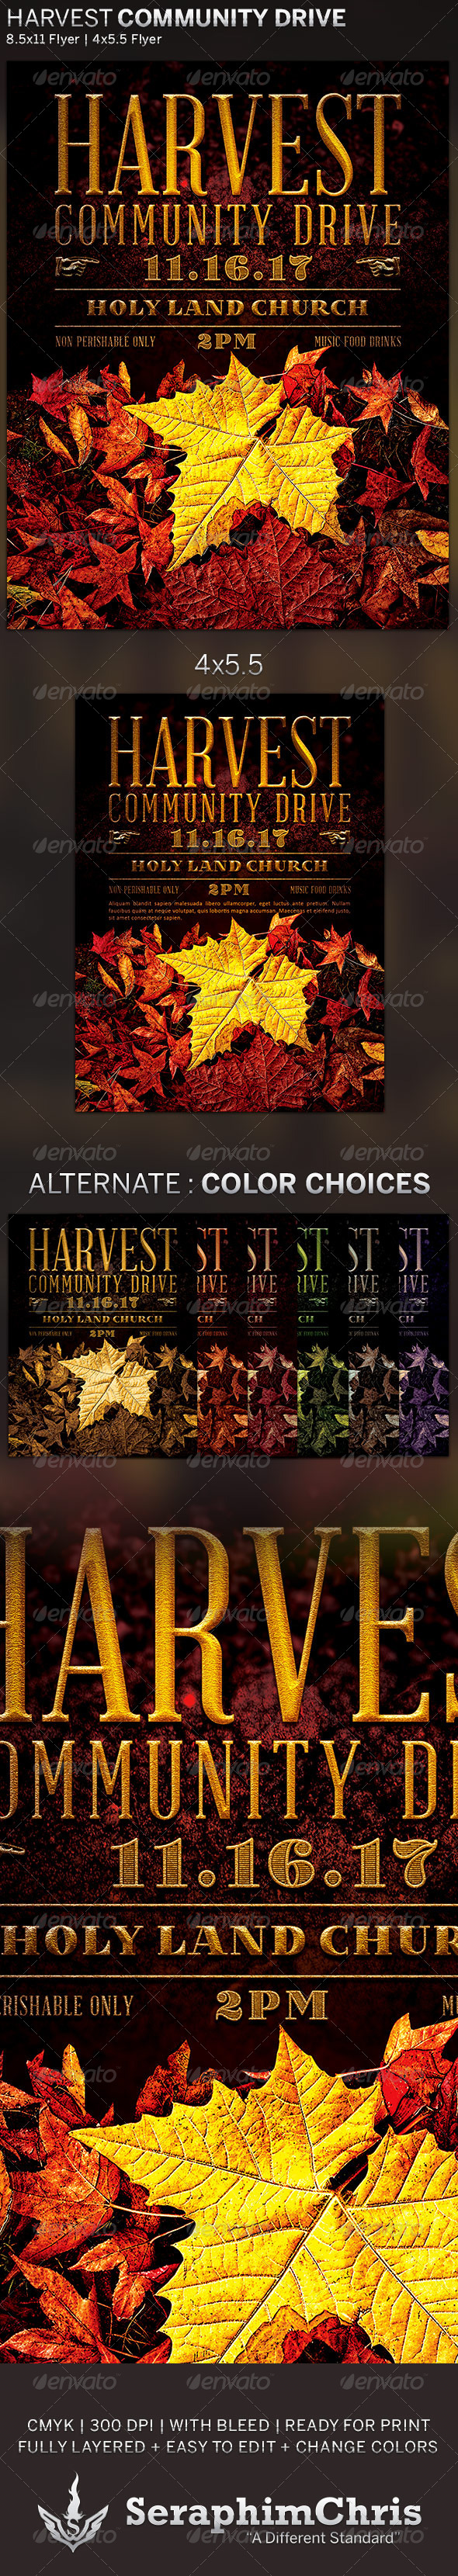 GraphicRiver Harvest Community Drive Church Flyer Template 5728623